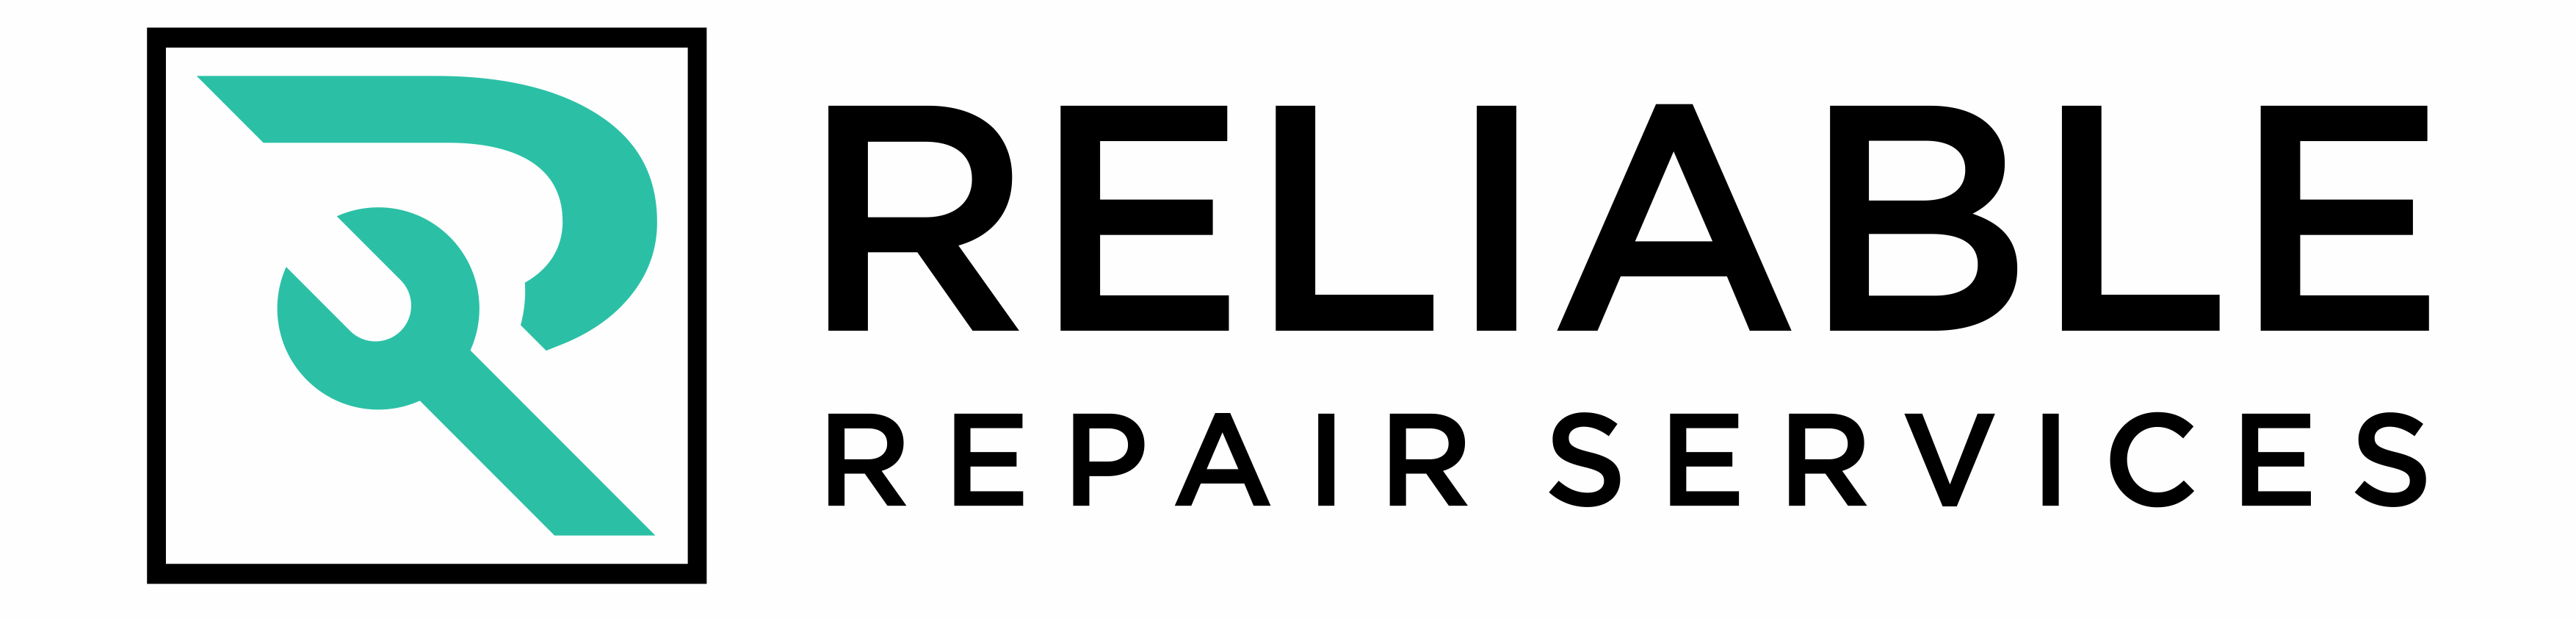 Reliable Repair Servies Logo